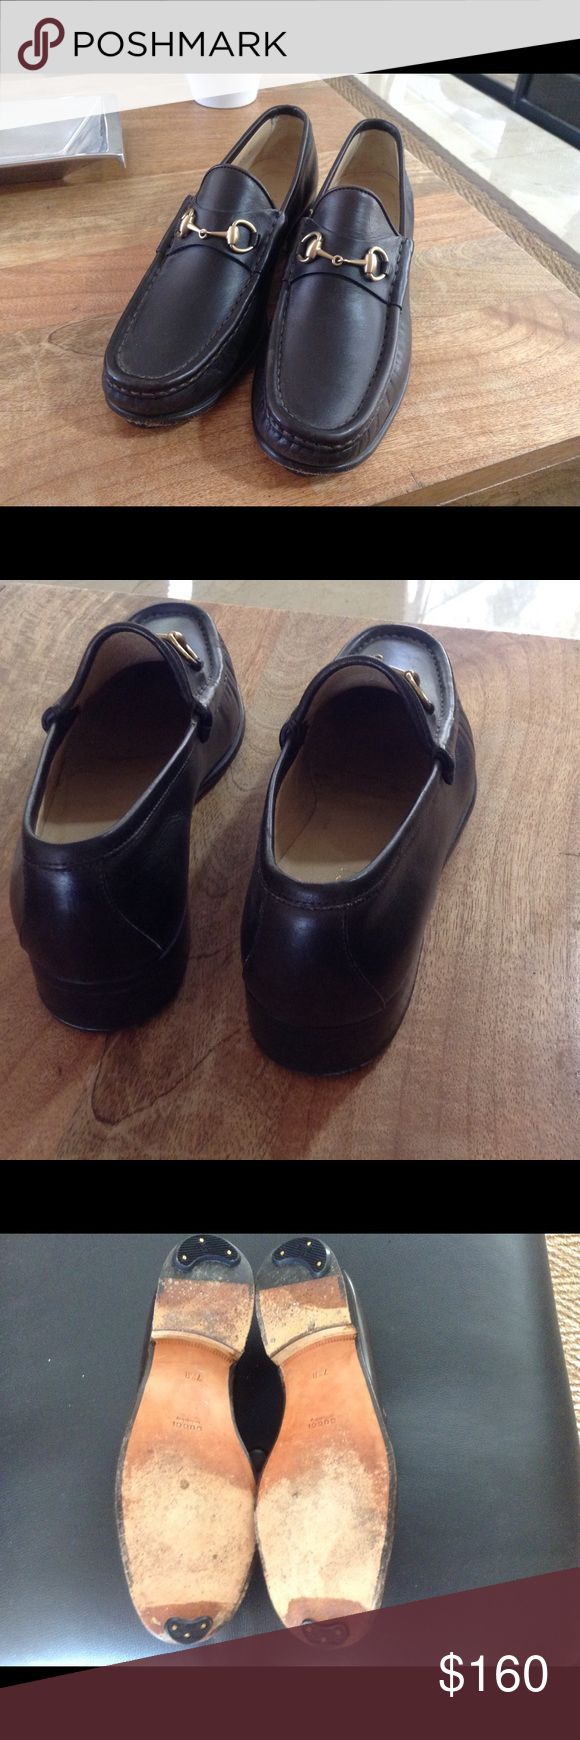 Gucci classic horse bit loafers Rare find in elegant brown leather, almost new worn only three times, toe and heel guards Shoes Flats & Loafers